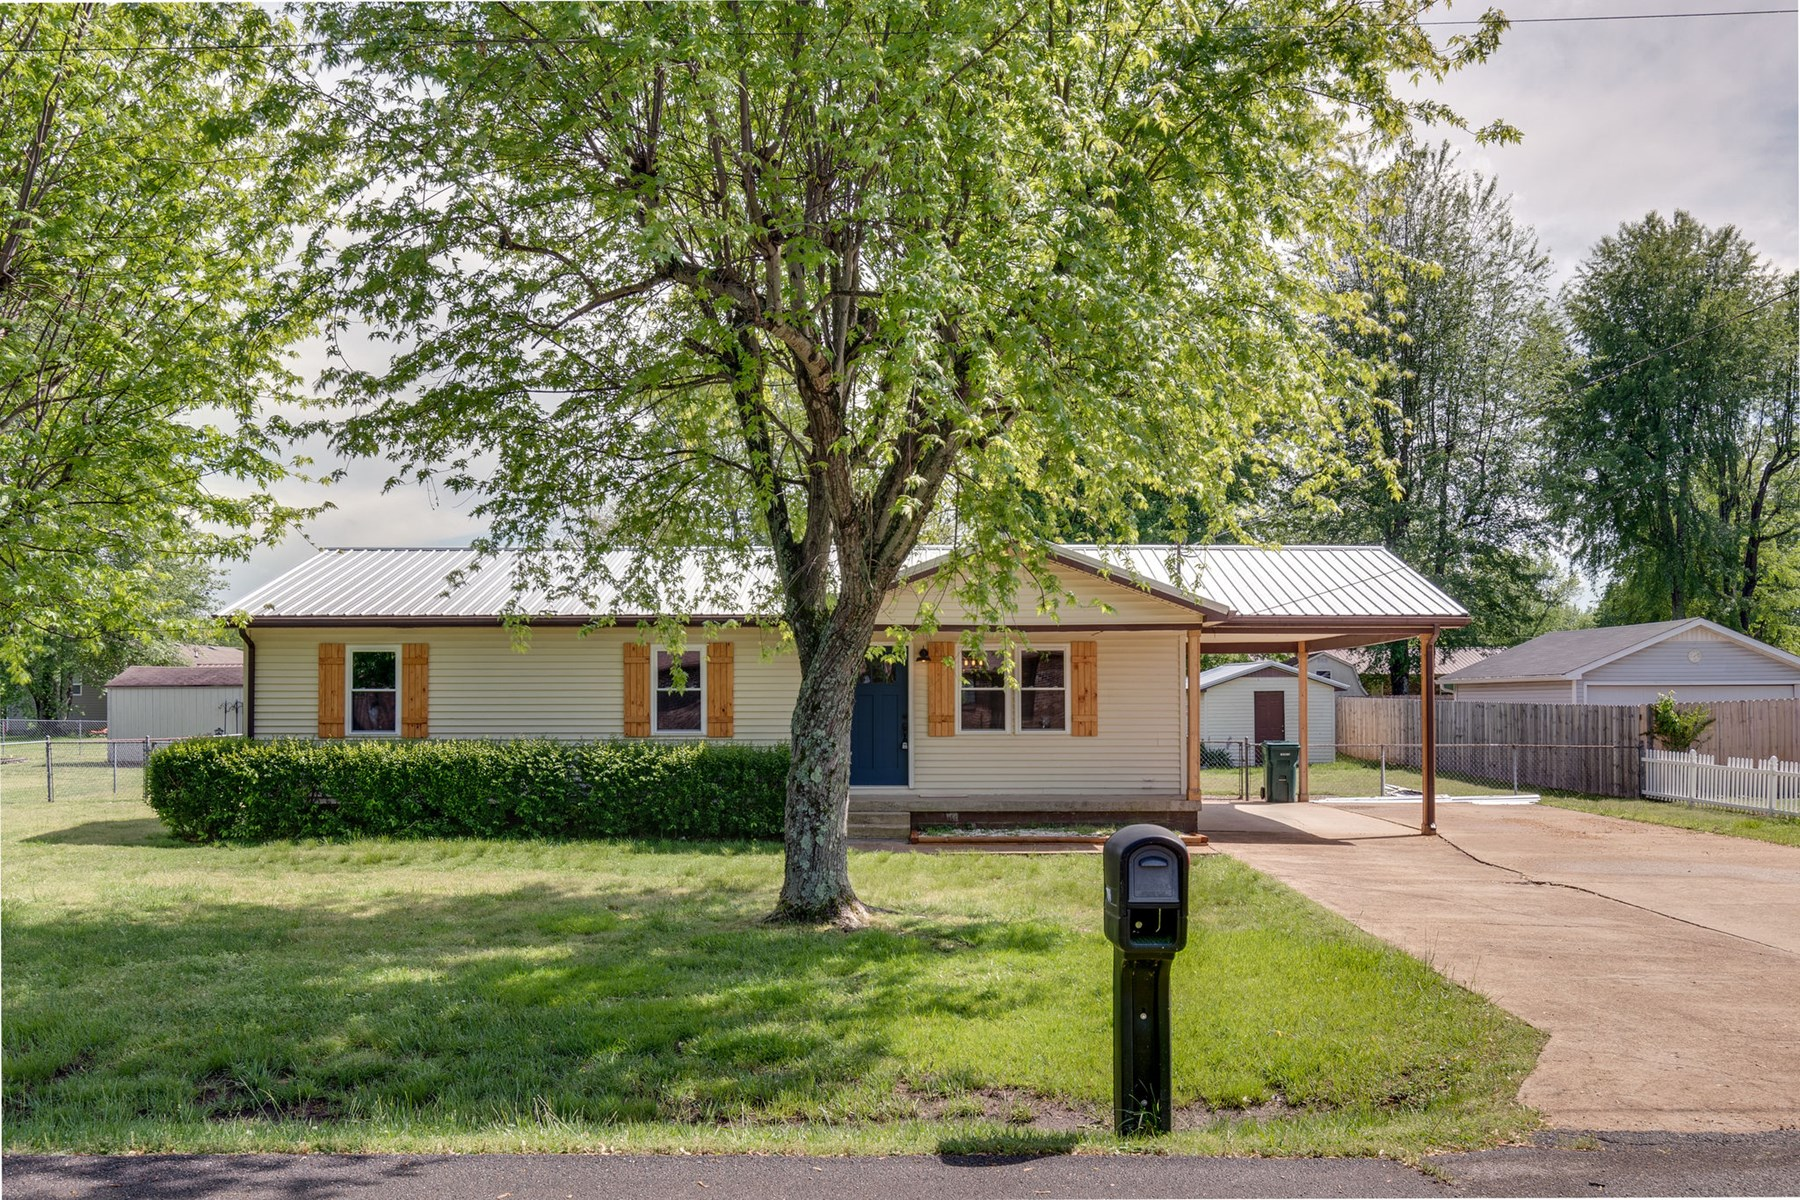 Renovated Ranch with Carport, for Sale in Hohenwald, TN